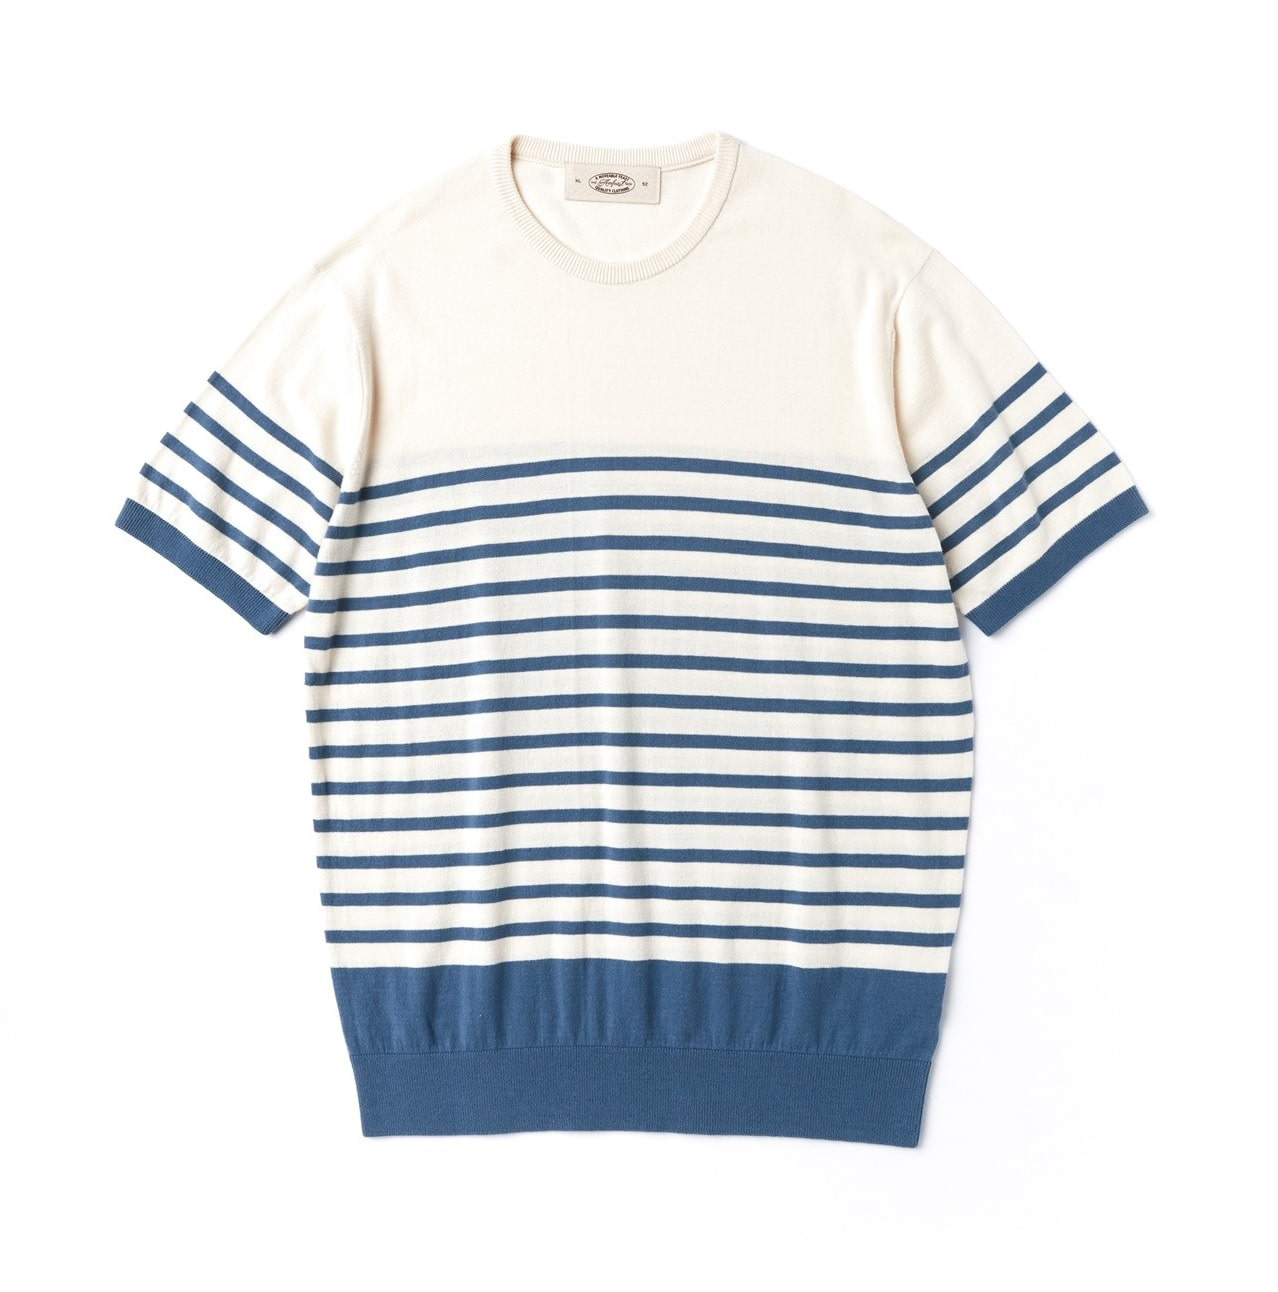 PABLO ROUND SUMMER KNITWEAR BLUEAMFEAST(암피스트)